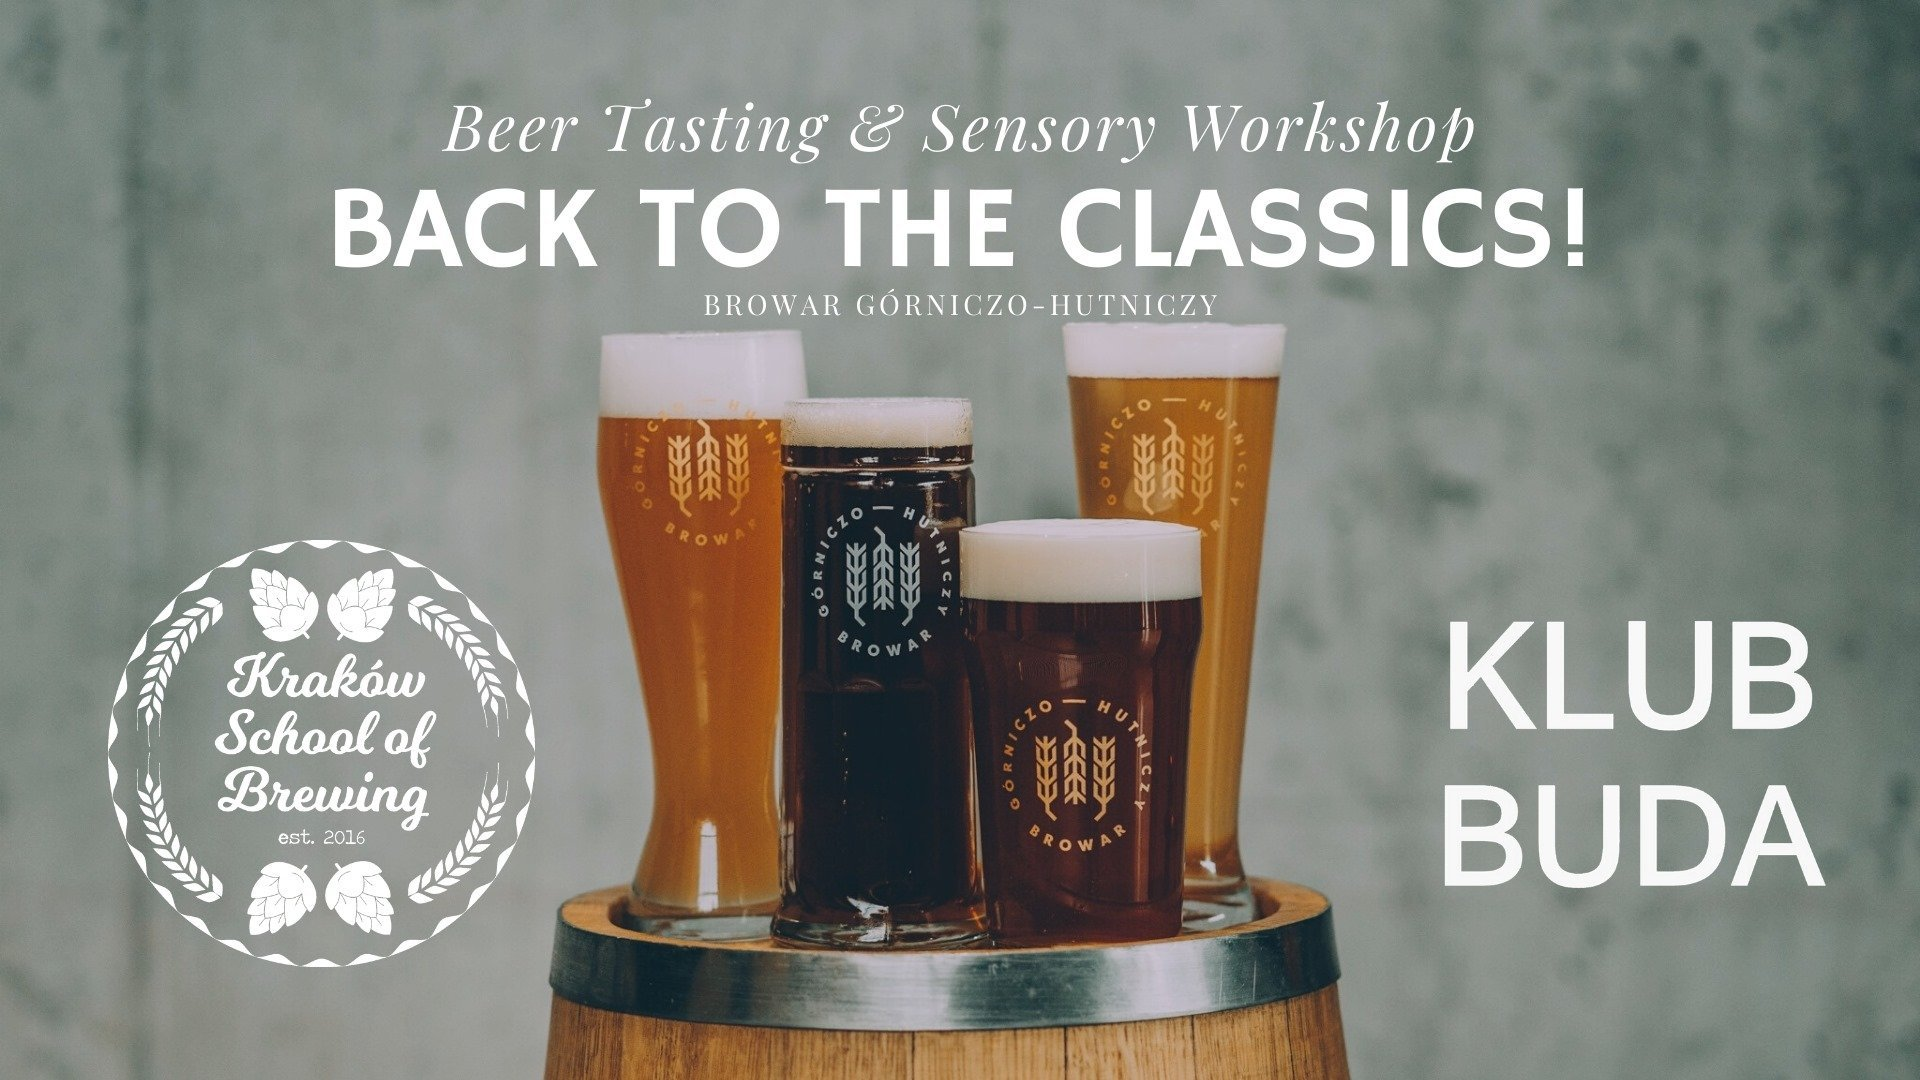 BGH Beer Tasting & Sensory Workshop